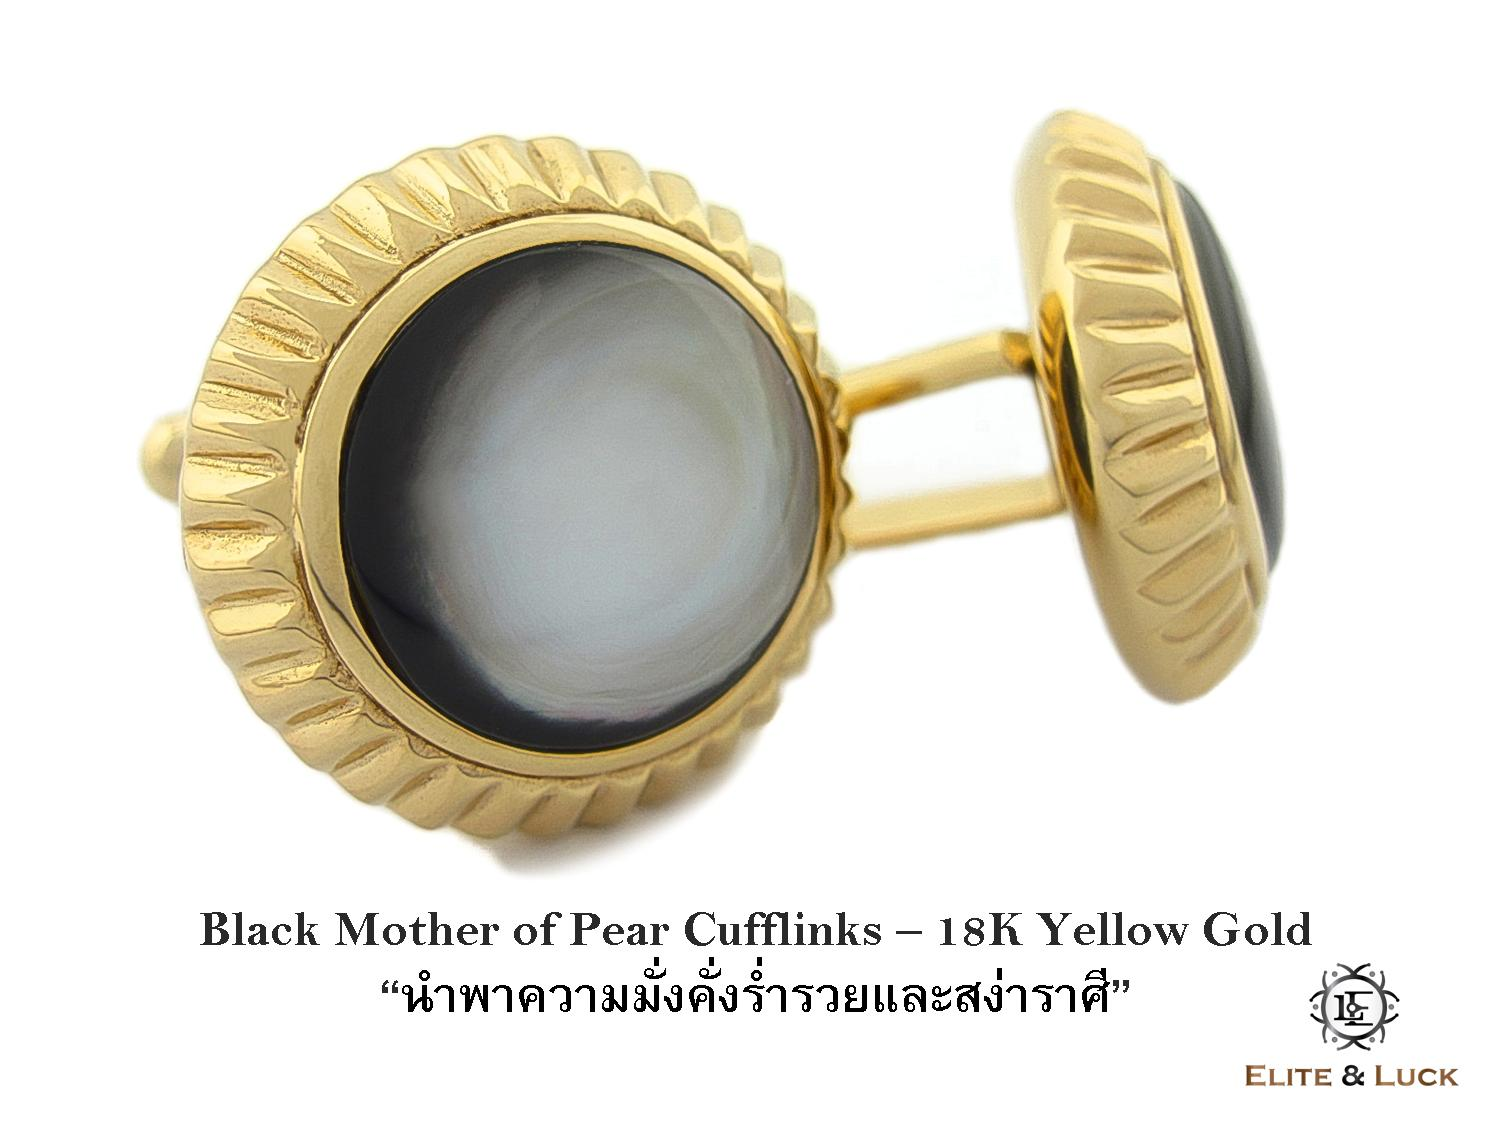 Black Mother of Pearl Sterling Sterling Silver Cufflinks สี 18K Yellow Gold รุ่น Elegant